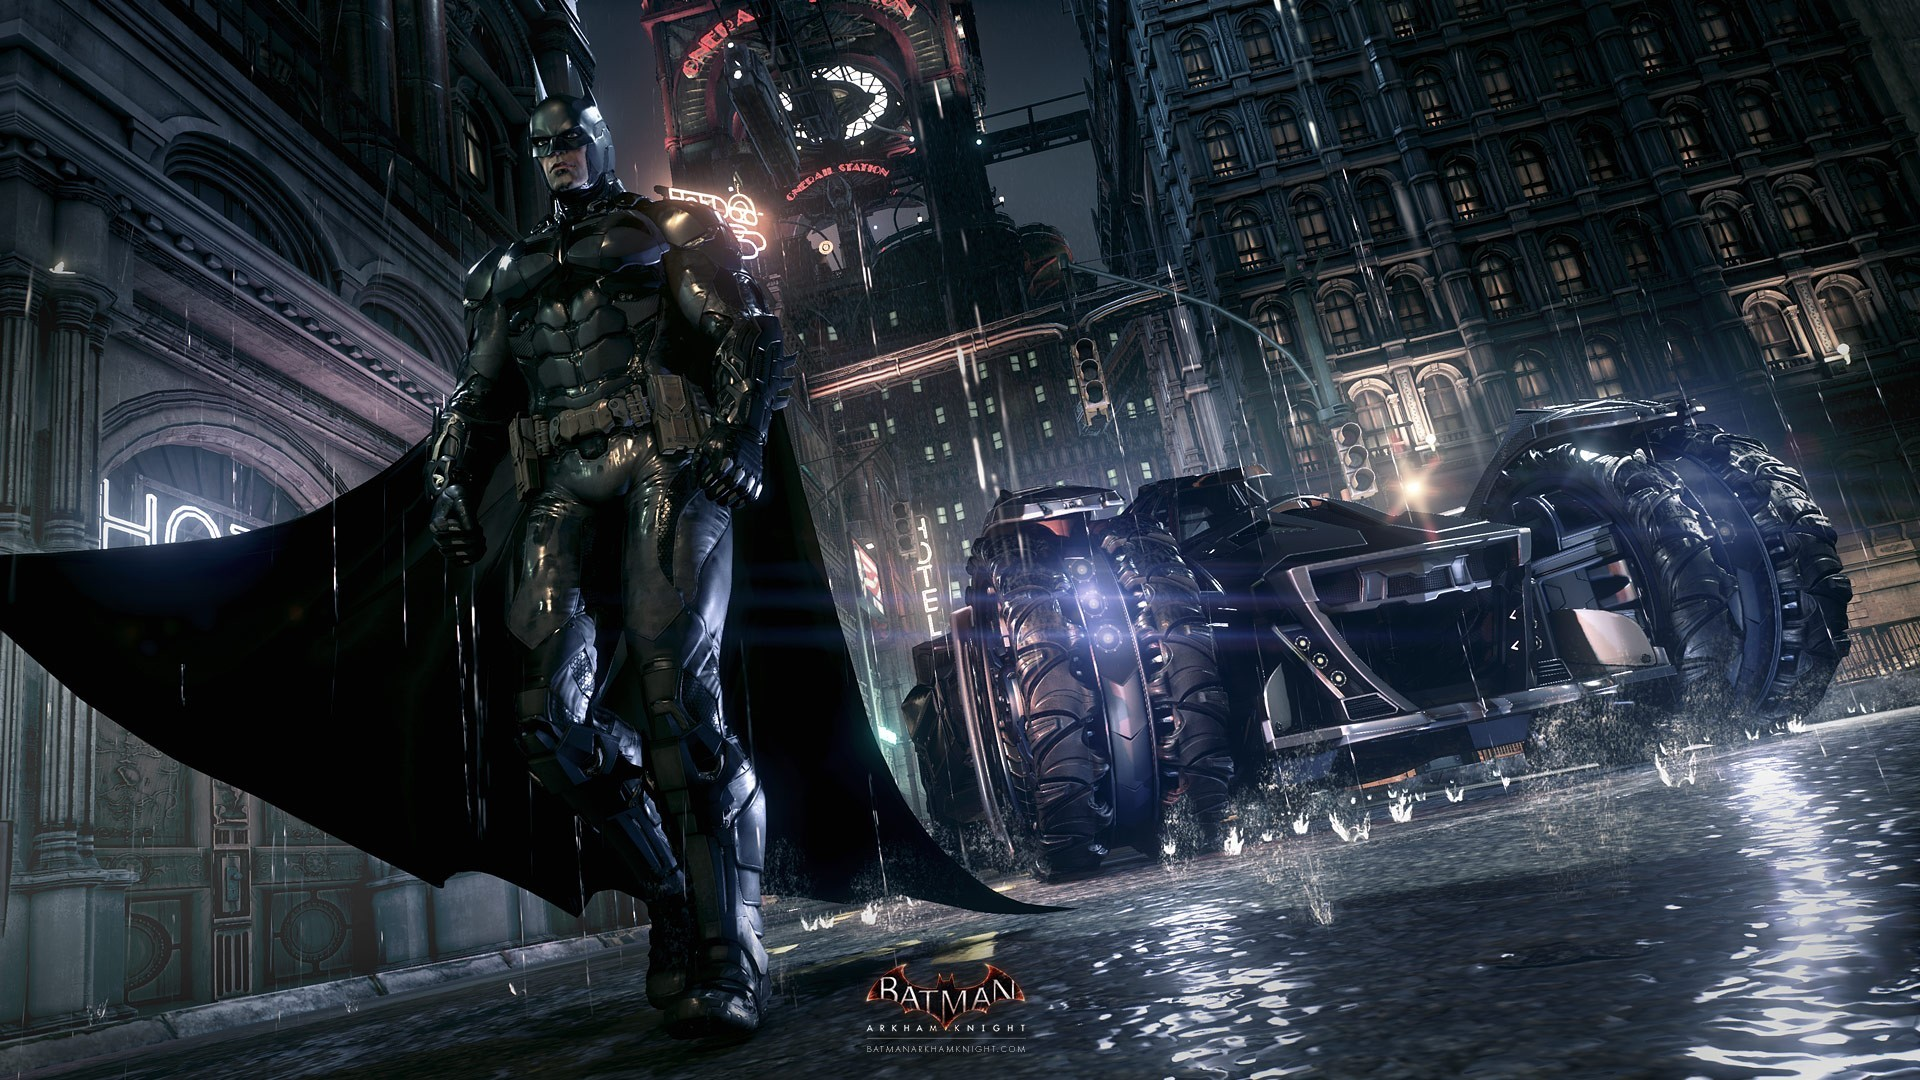 Free Download Batman Arkham Knight 4k Wallpaper 67 Images 1920x1080 For Your Desktop Mobile Tablet Explore 26 Batman 4k Wallpapers 4k Batman Wallpaper Batman 4k Wallpaper Batman 4k Wallpapers